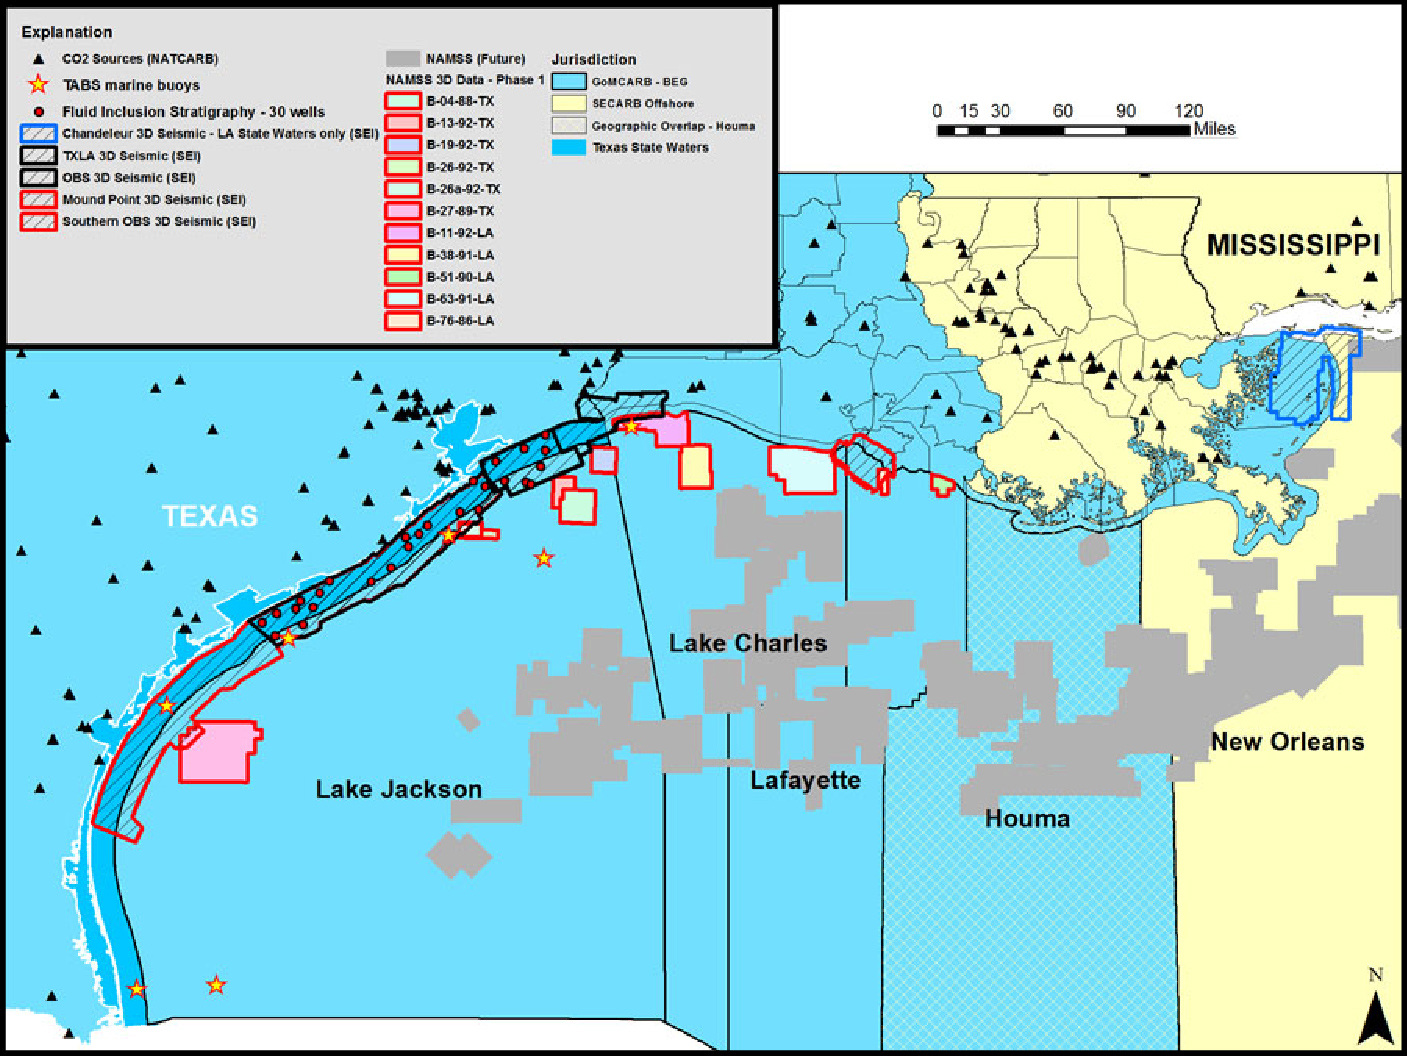 Map of offshore areas already extensively studied